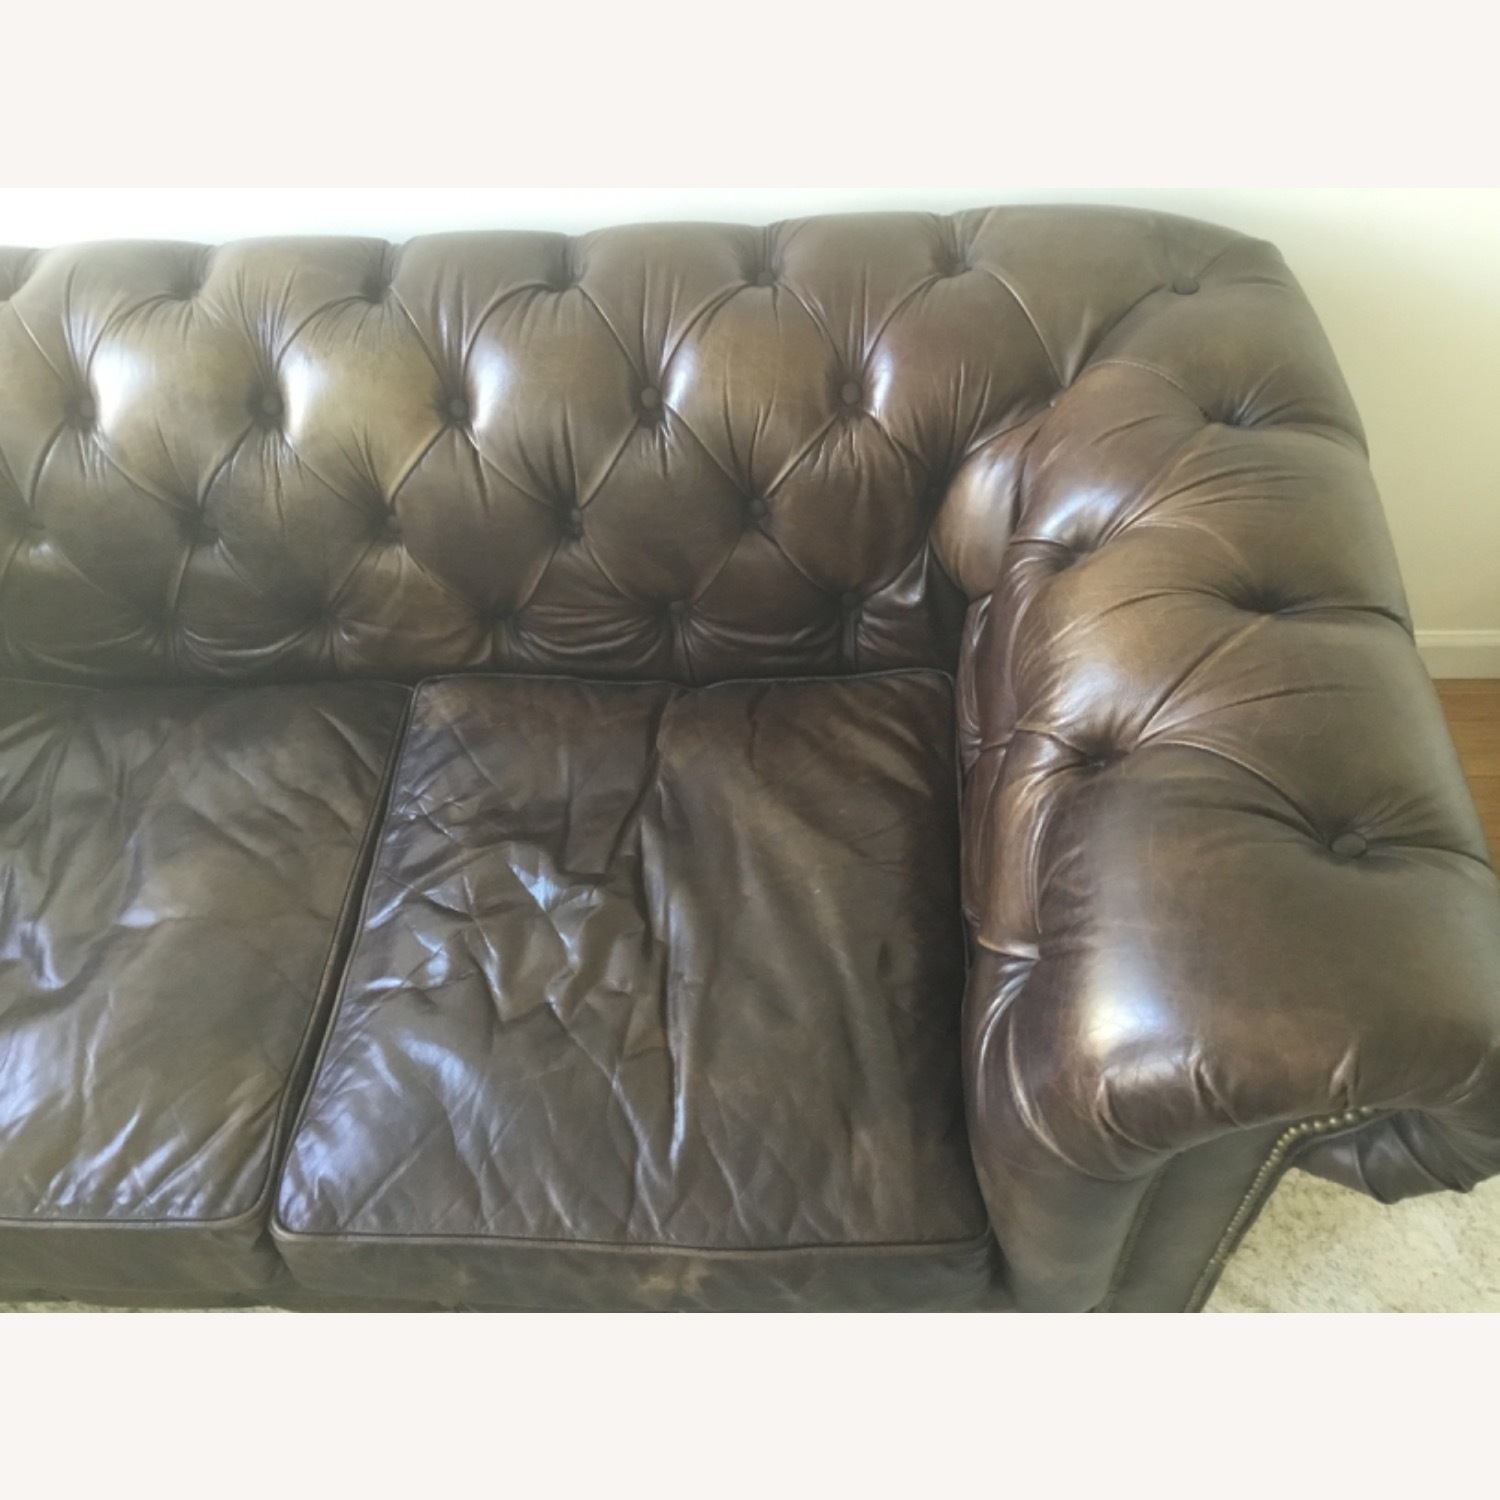 Timothy Outlon Westminster Button Leather Couch - image-4